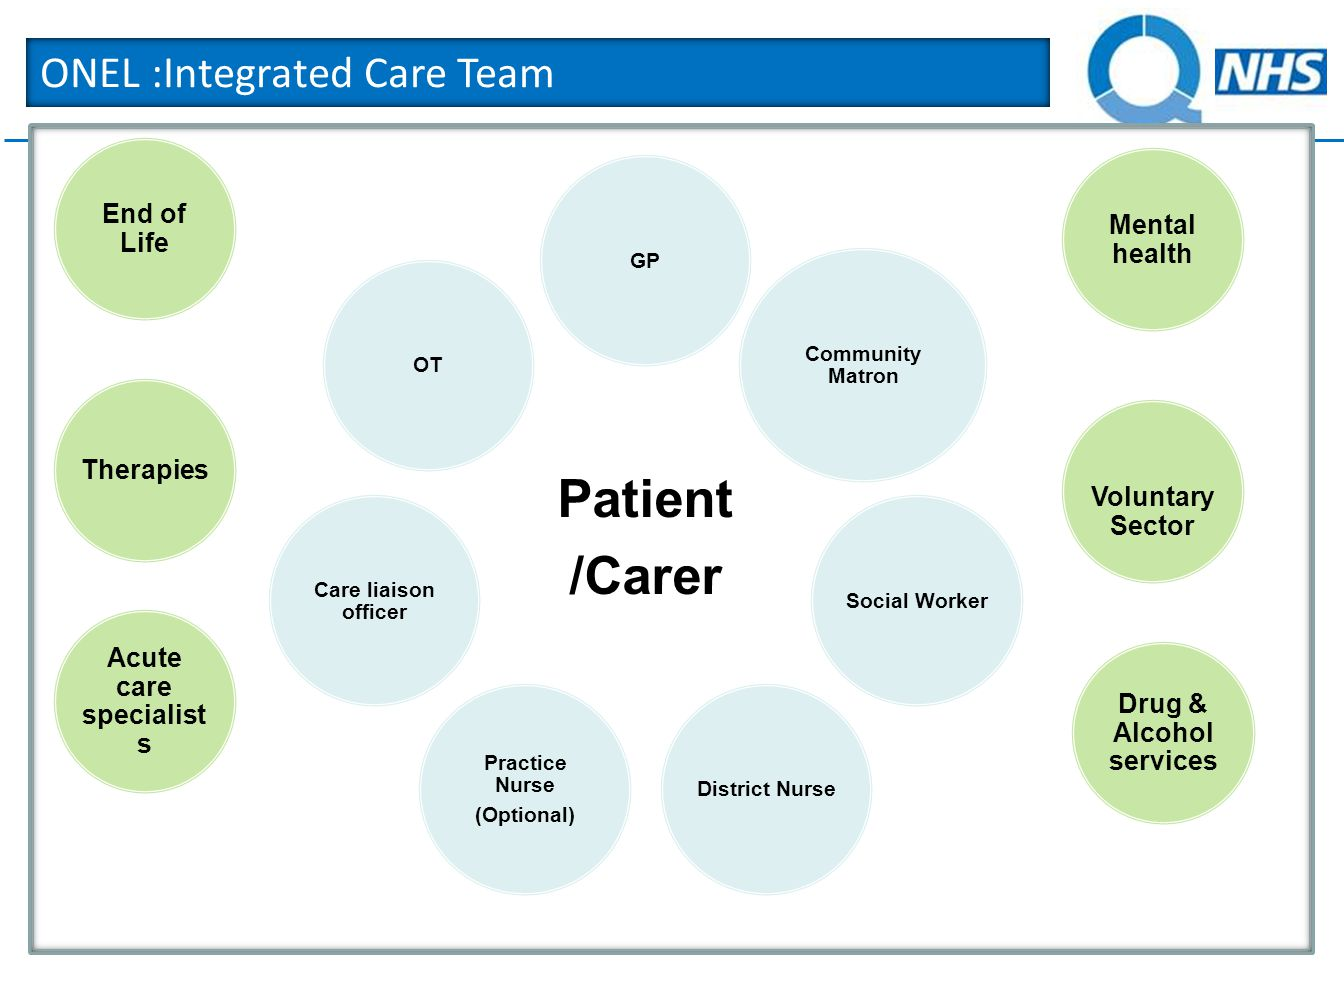 ONEL :Integrated Care Team Patient /Carer GP Community Matron Social WorkerDistrict Nurse Practice Nurse (Optional) Care liaison officer OT Therapies Acute care specialist s End of Life Mental health Voluntary Sector Drug & Alcohol services